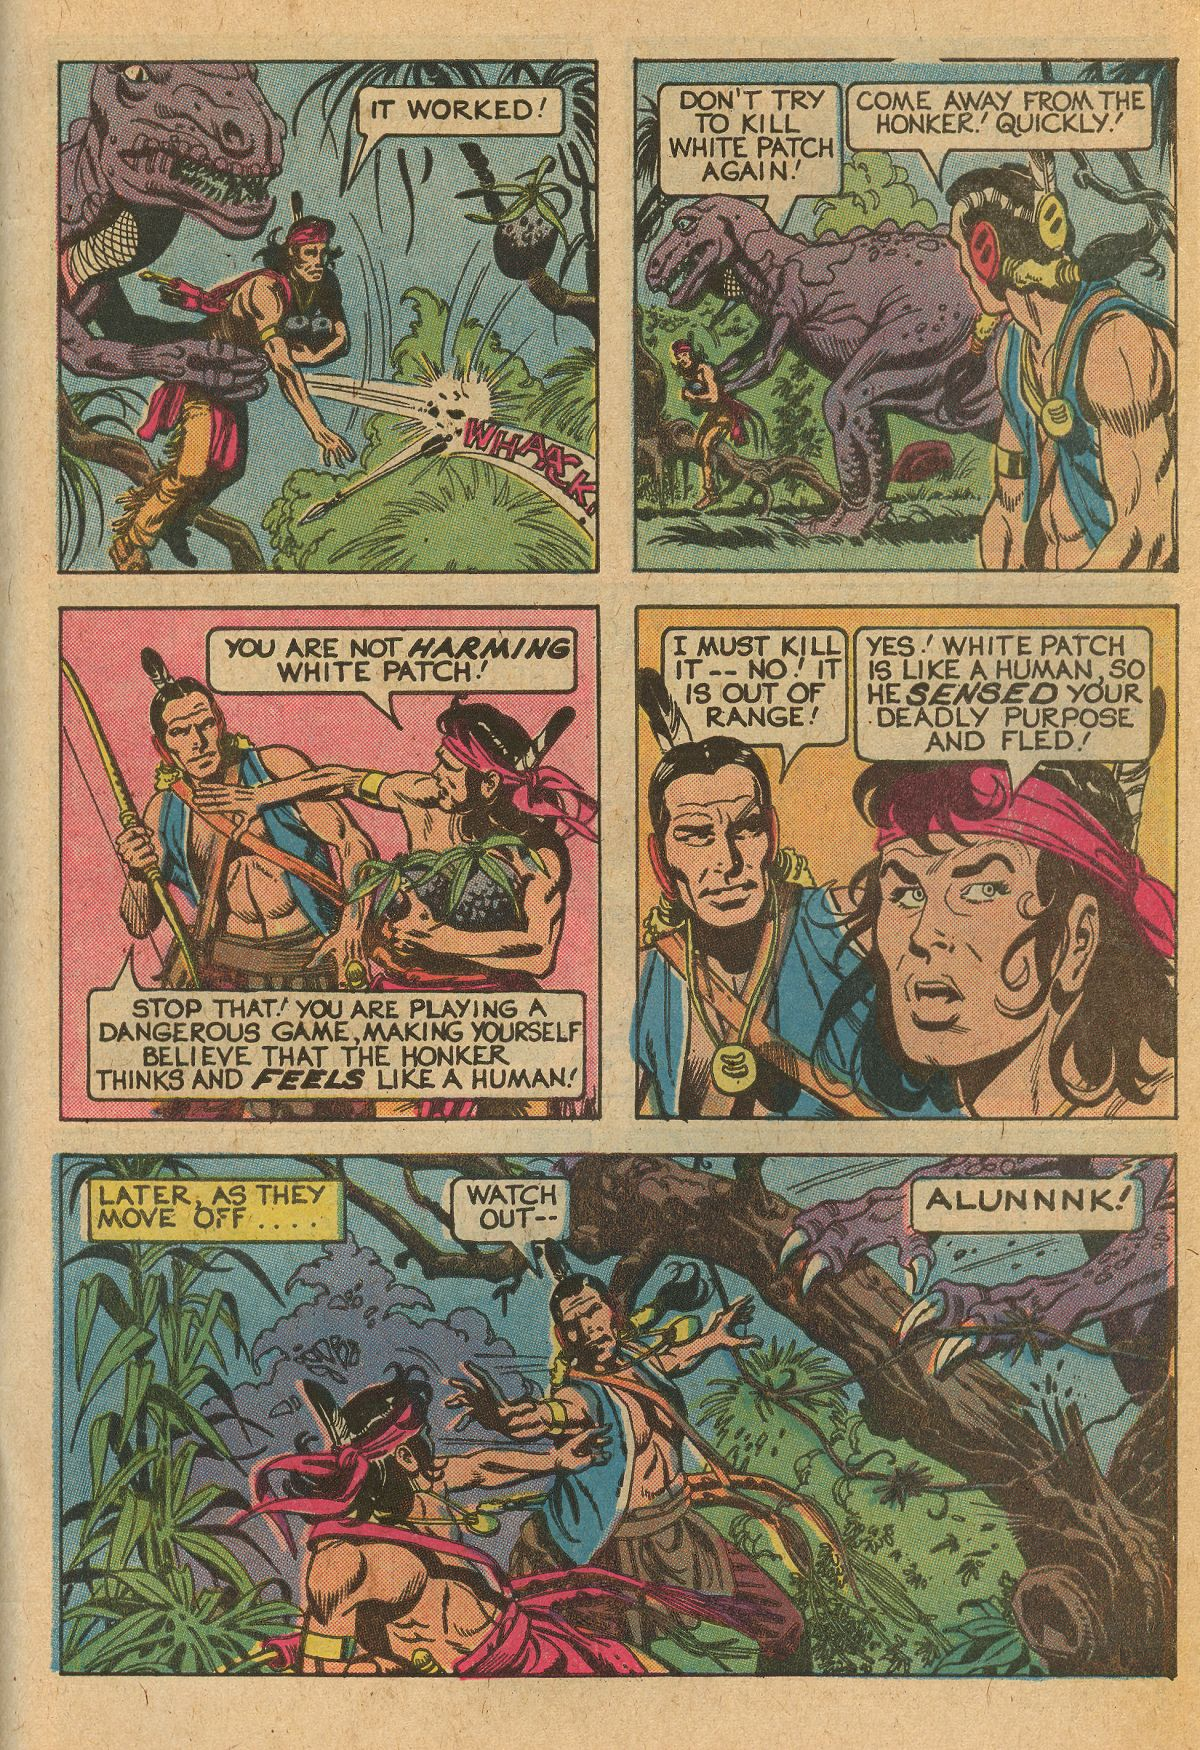 Read online Turok, Son of Stone comic -  Issue #115 - 47